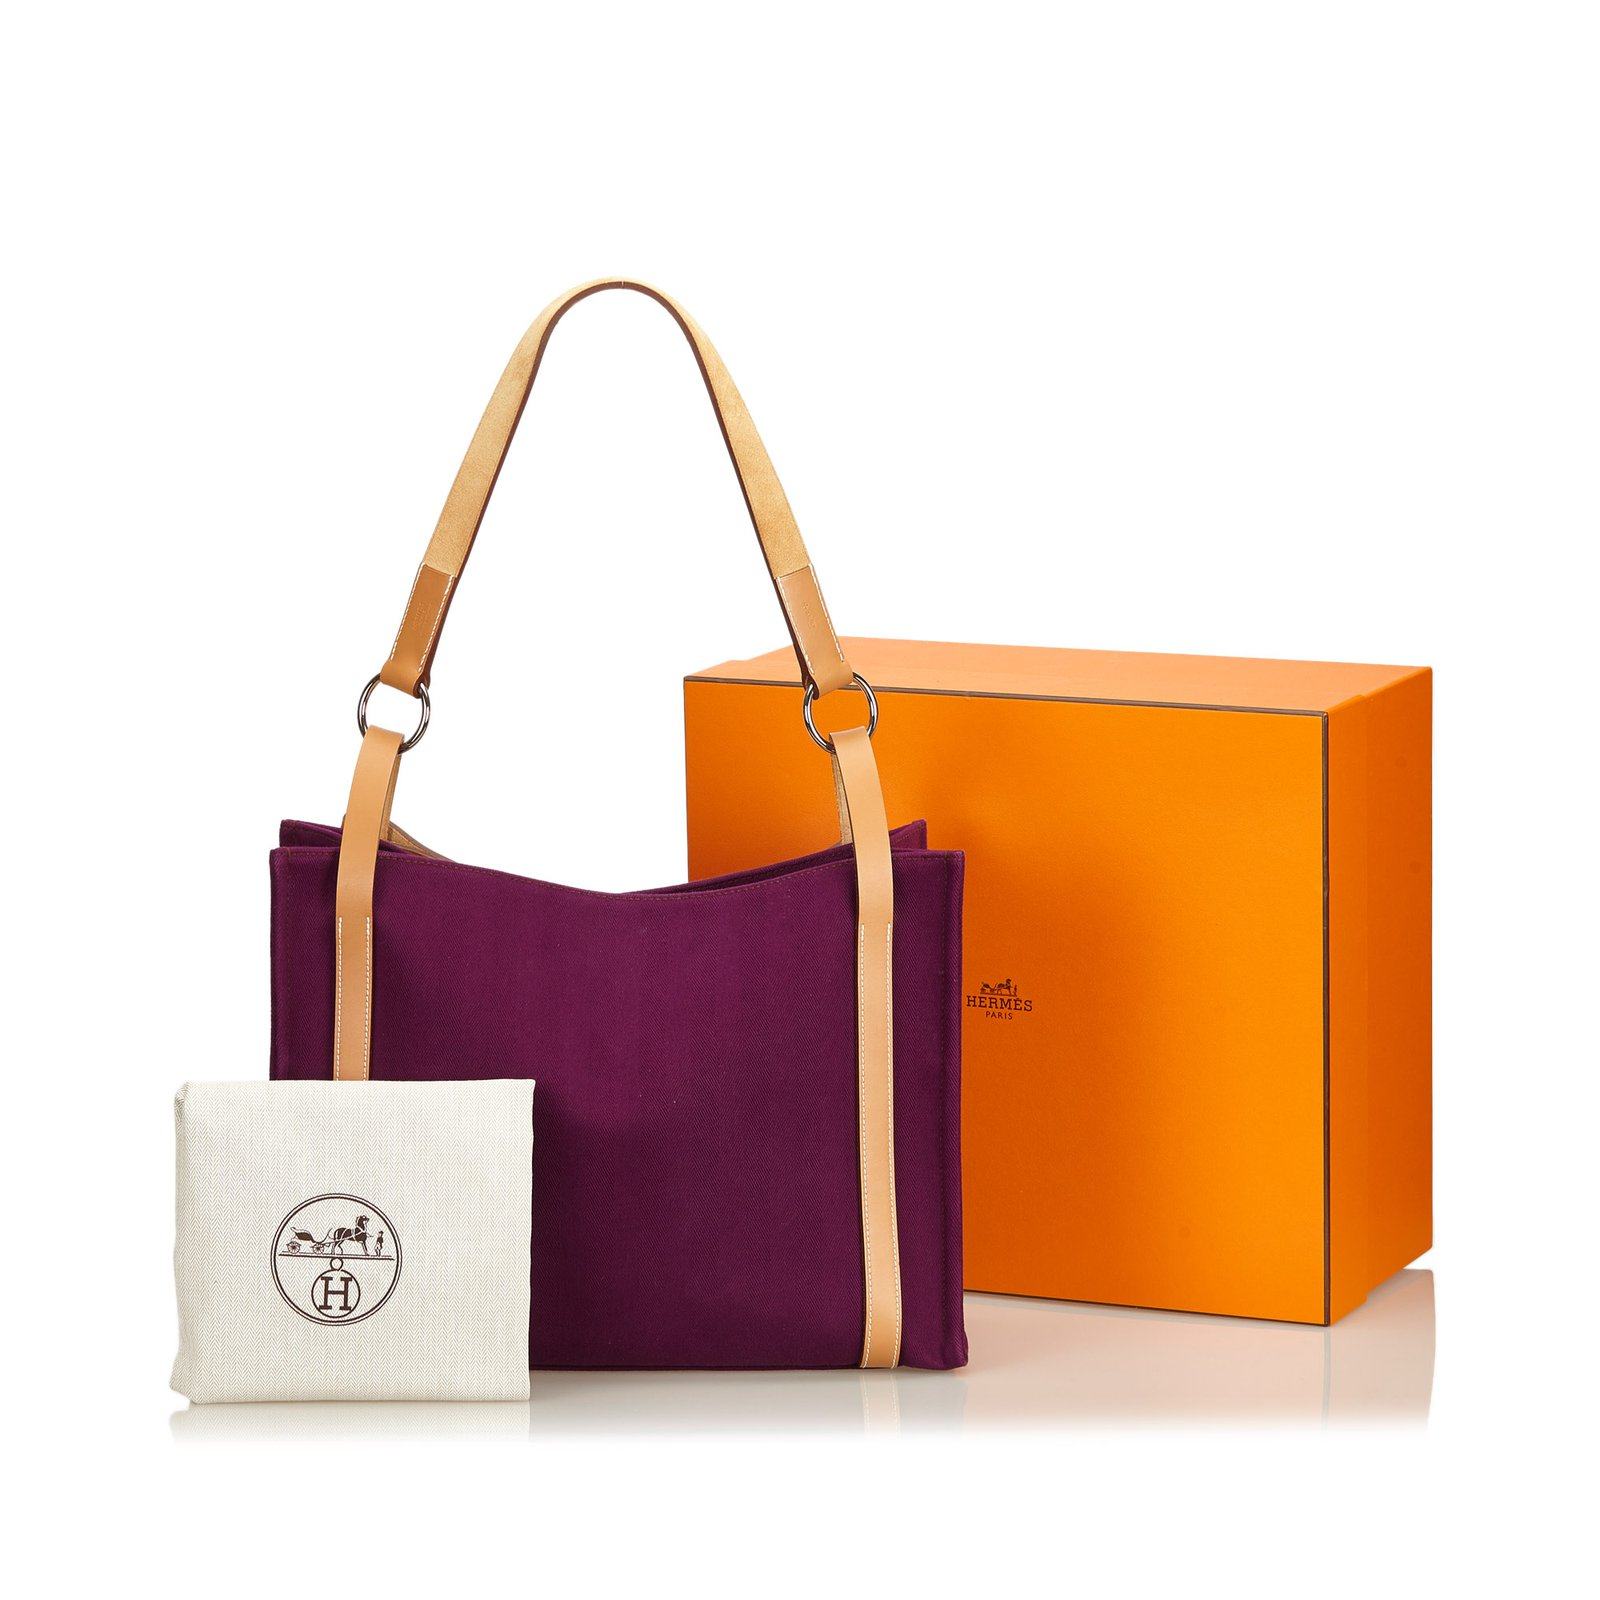 c968cc8ee Hermès Cabalicol Canvas Tote Bag Totes Leather,Other,Cloth Brown,Purple  ref.99615 - Joli Closet